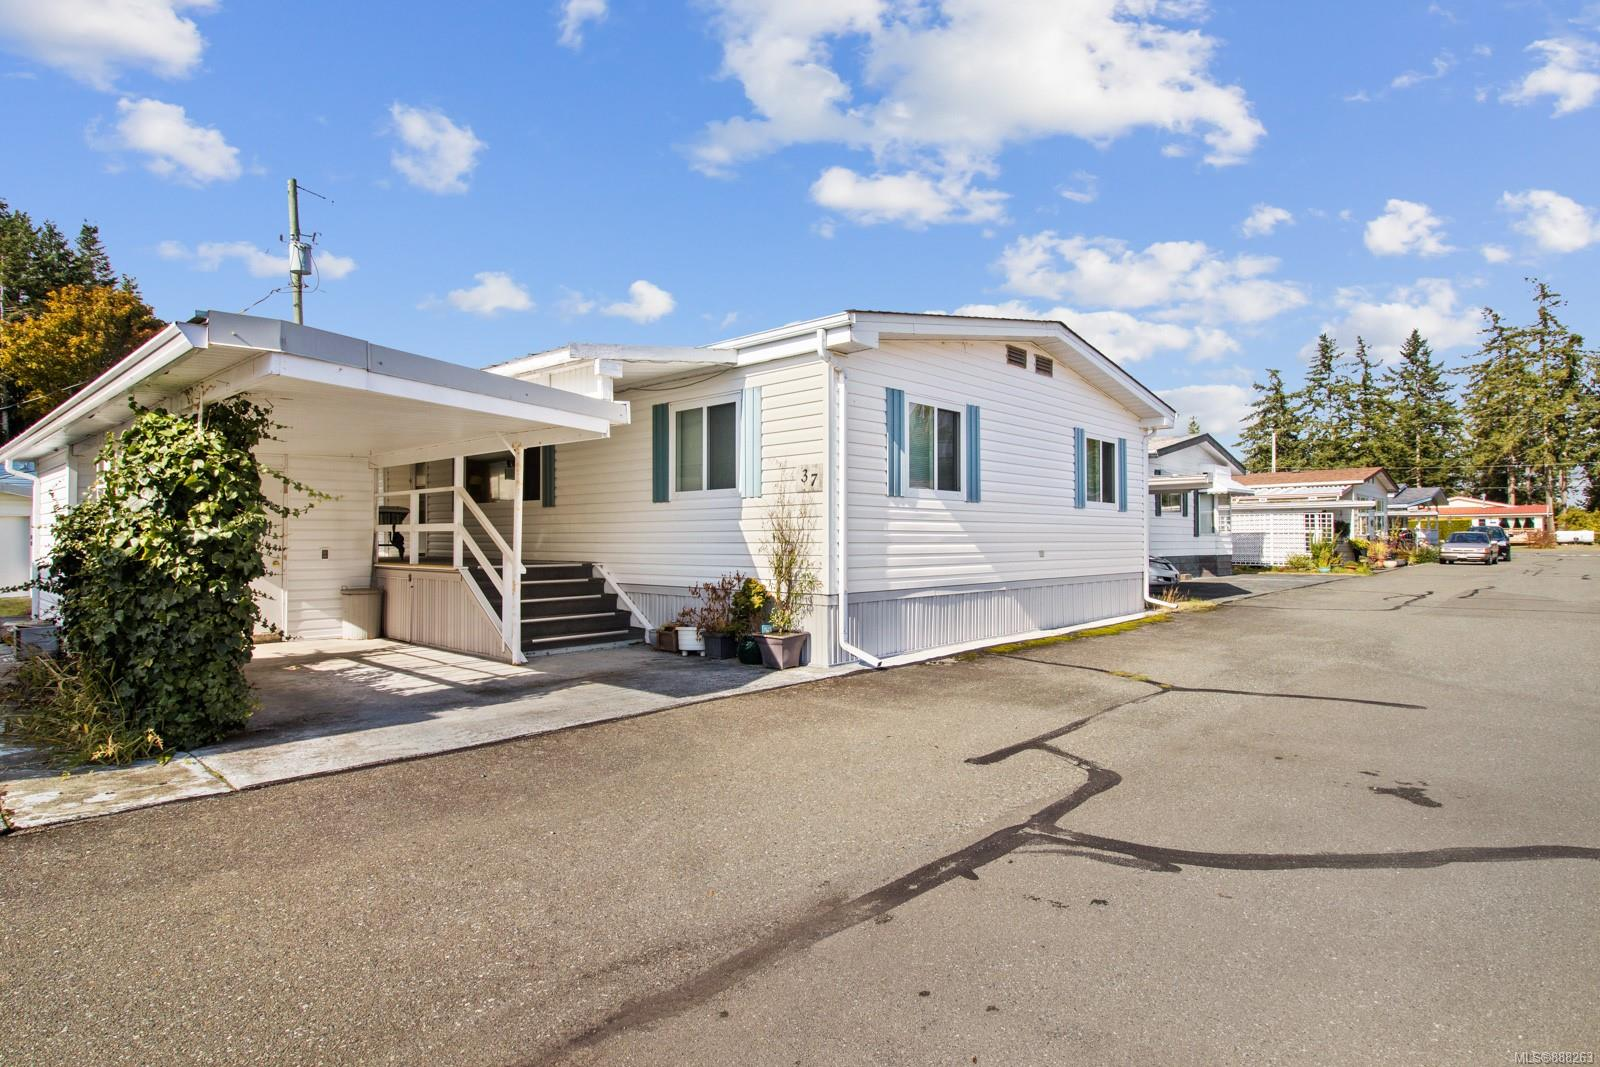 This lovely, well maintained double wide manufactured home is located in the community of Del's Trailerland. Located on the Comox peninsula close to the beach and is in a great walking area. The lot enjoys a cozy patio space to relax and a green space located directly behind for you to enjoy. There are two comfortable bedrooms in this home with the master bedroom having an ensuite bathroom, also a bonus room/den located off the living room. The kitchen area is open and spacious.